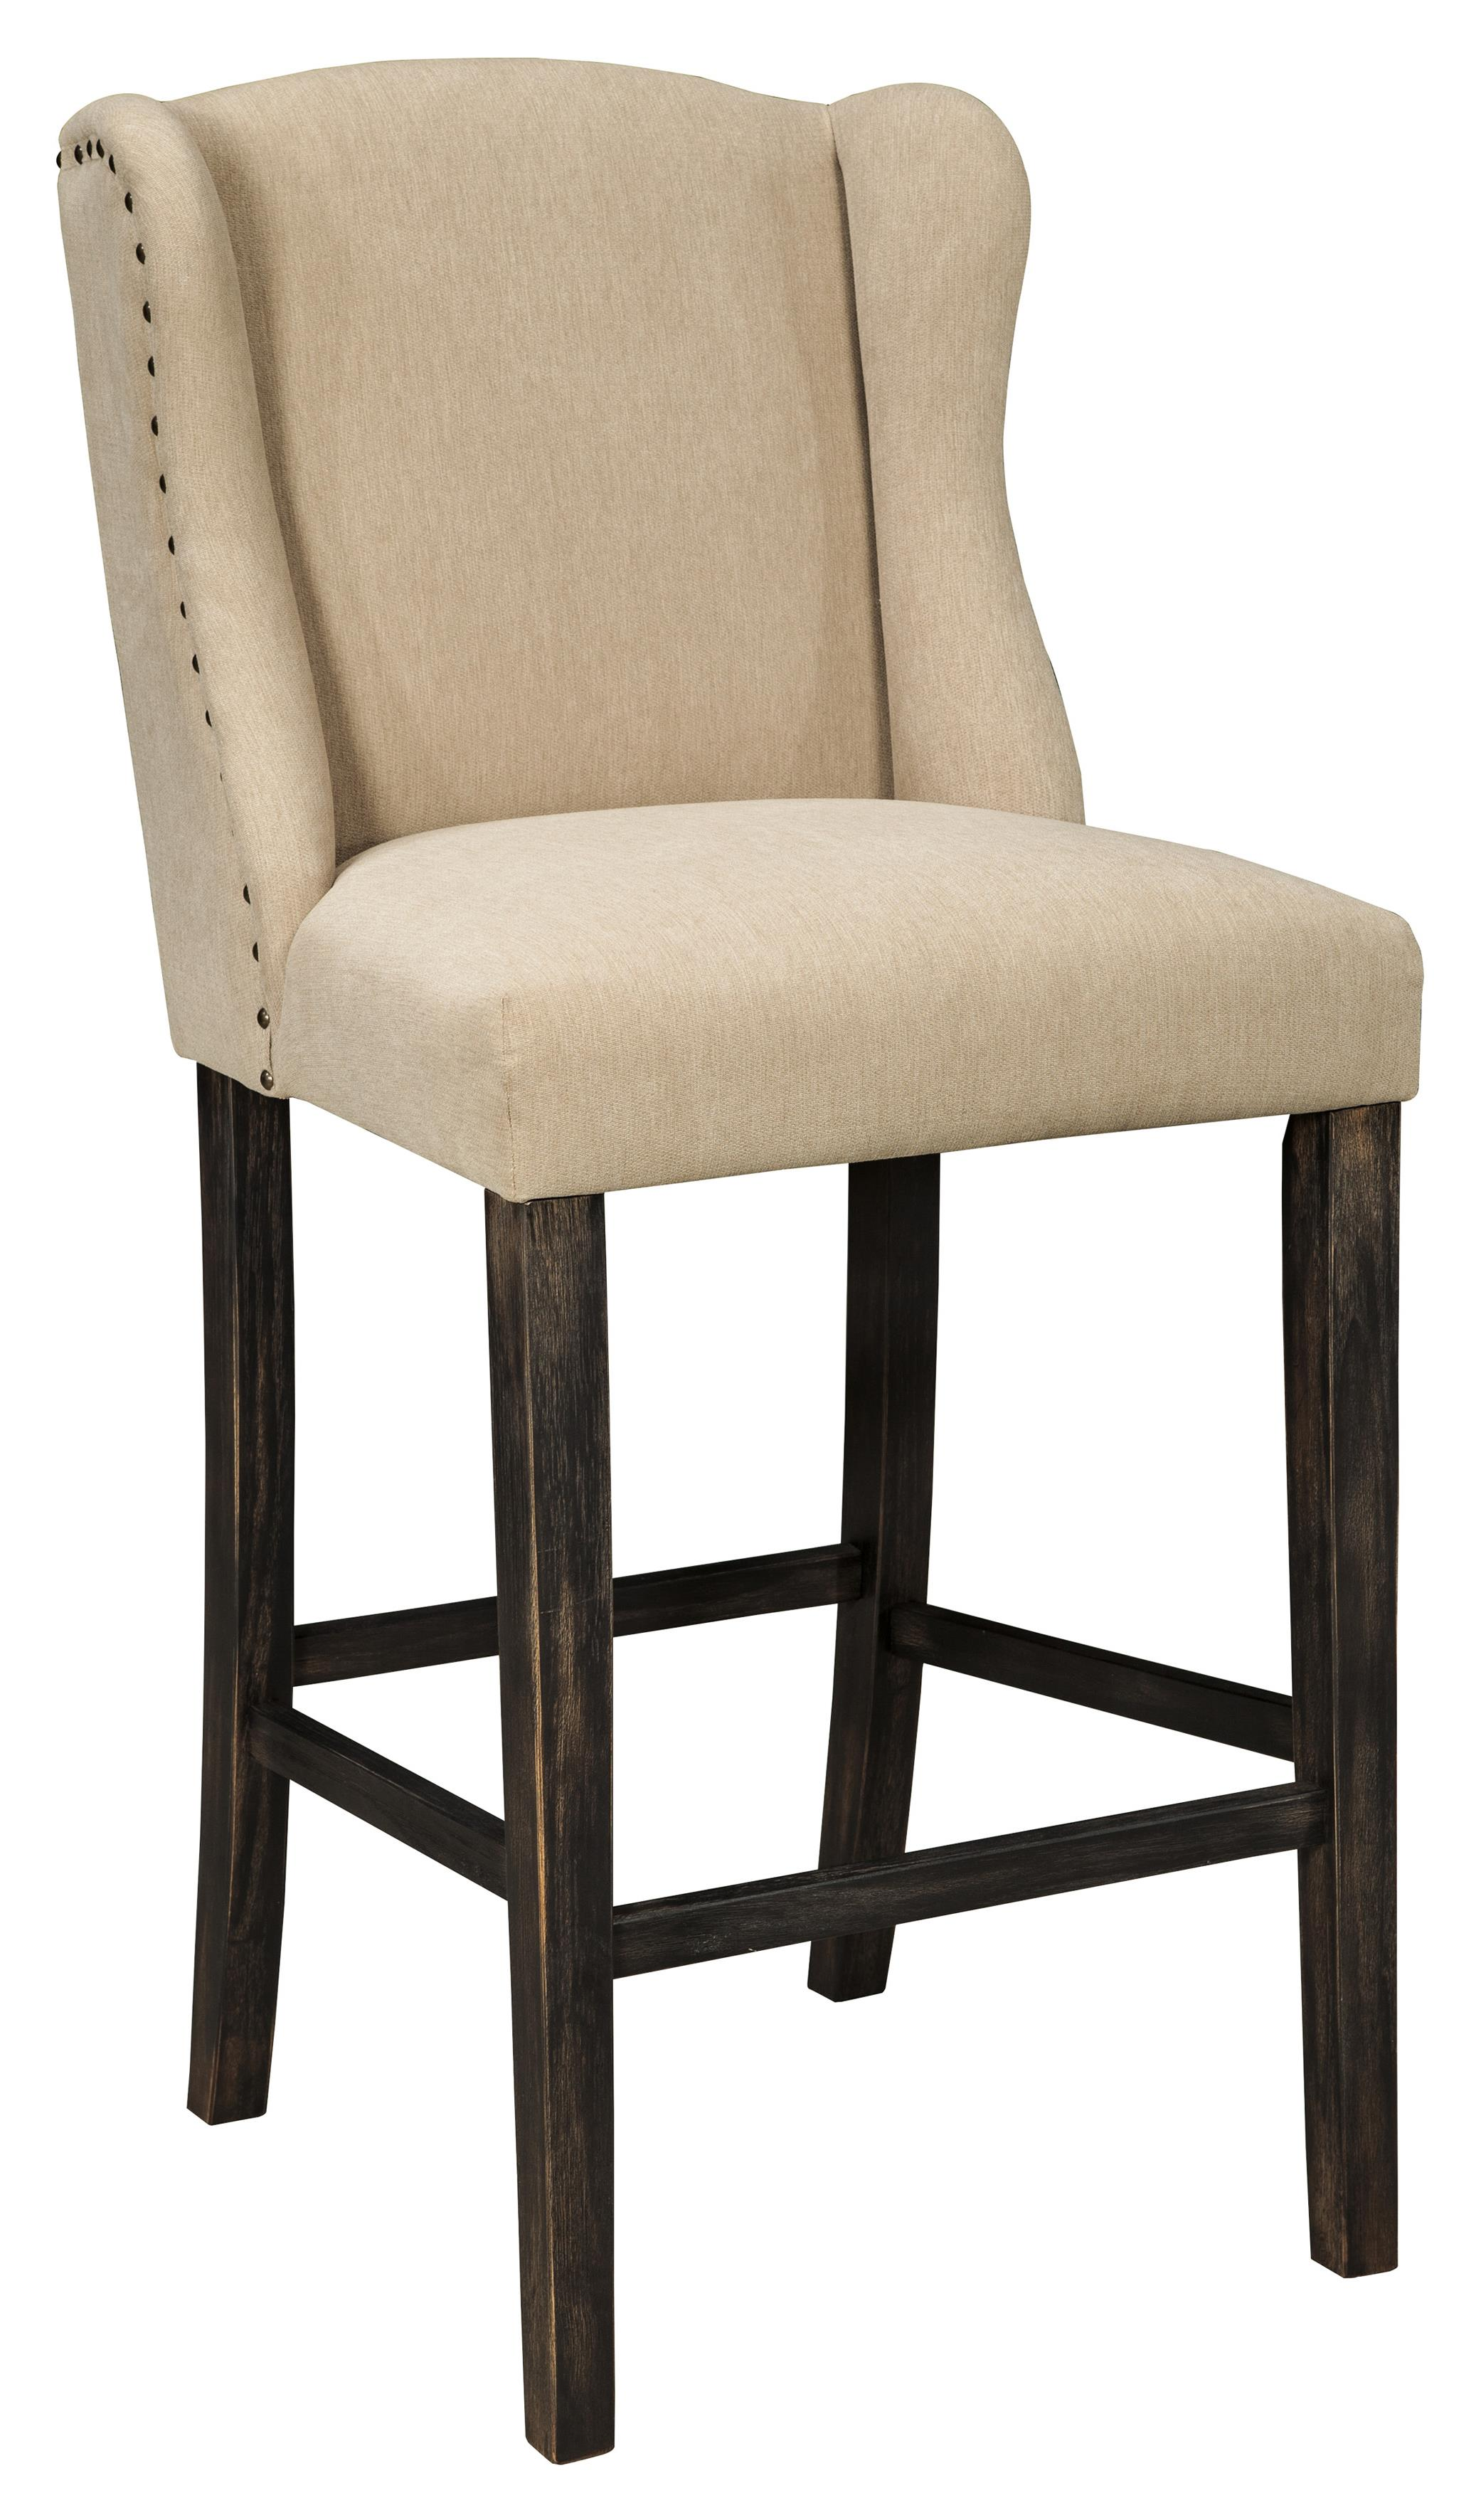 Signature Design by Ashley Moriann Tall Upholstered Barstool - Item Number: D608-530